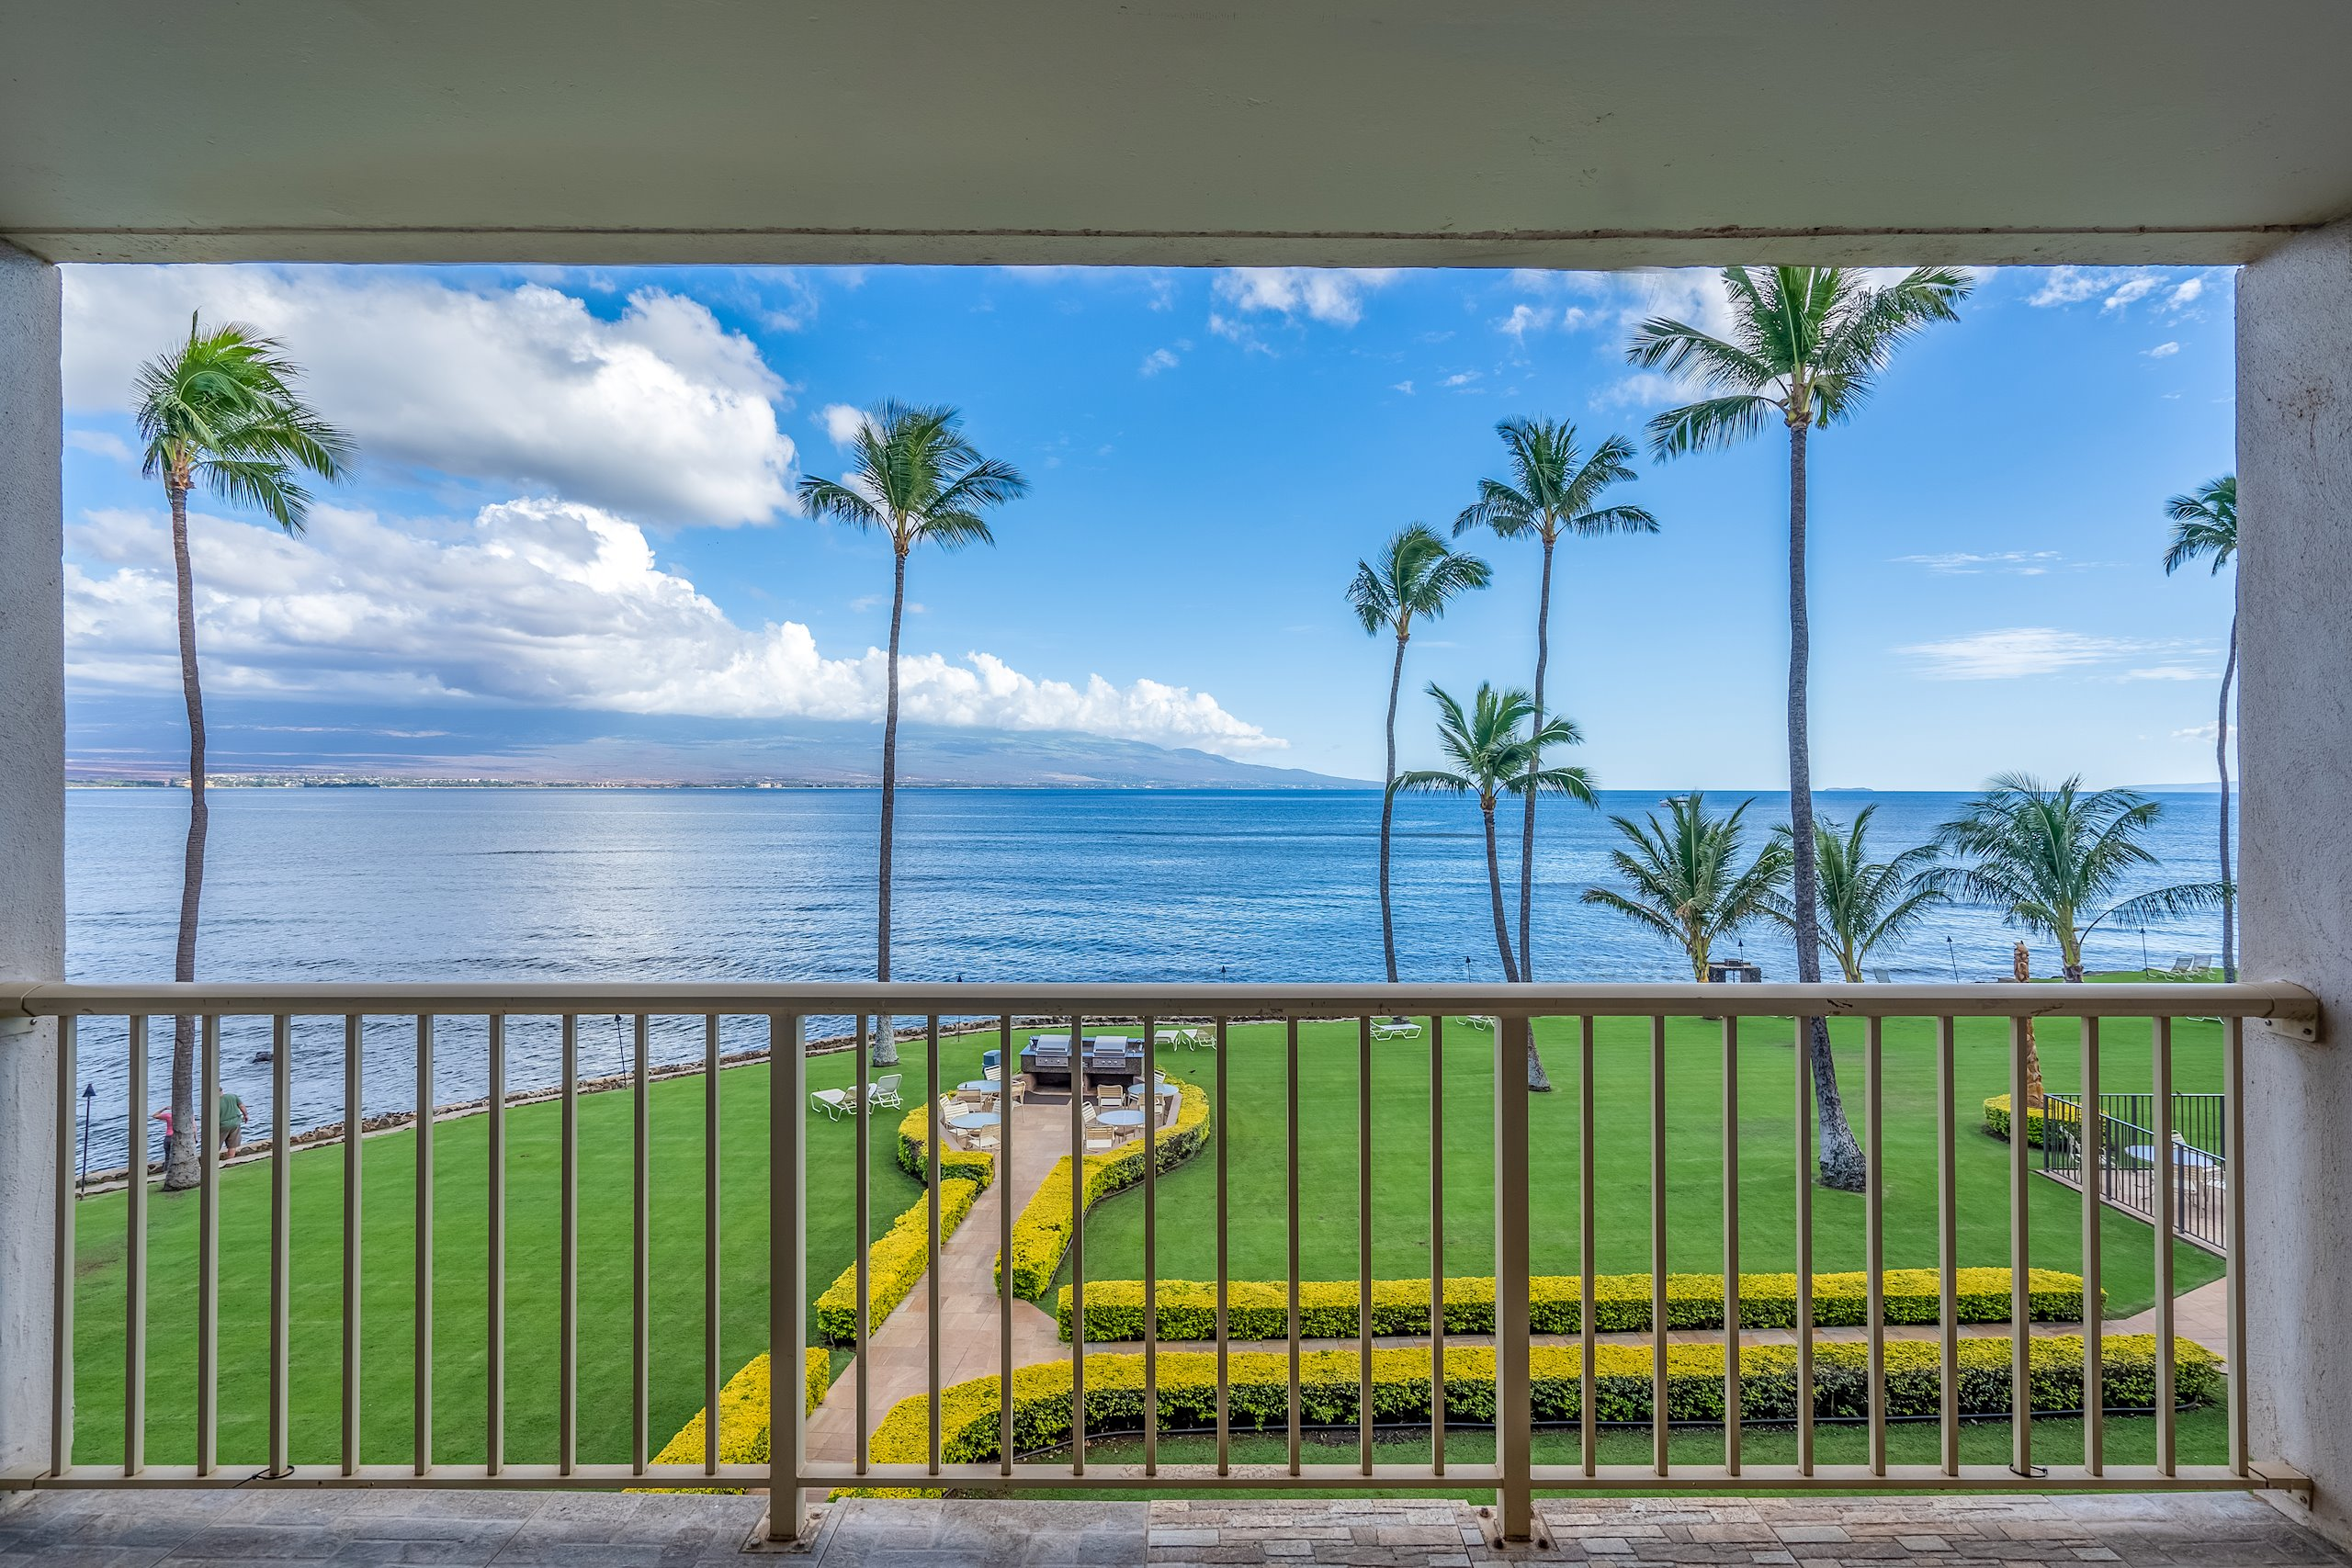 Located in highly sought after Maalaea Kai, this condo offers a rare opportunity to own your perfect oceanfront home or a highly sought after vacation rental. Enjoy seasonal whale-watching from the lanai or take in the surfers along with Maalaea Pipeline as you enjoy a morning coffee or a sunset cocktail. This condo was totally remodeled in 2014, down to the studs with upgrades galore. This property has not been in an active vacation rental program and is in pristine condition. Vacant and easy to show, so call your favorite REALTOR today to schedule a showing.